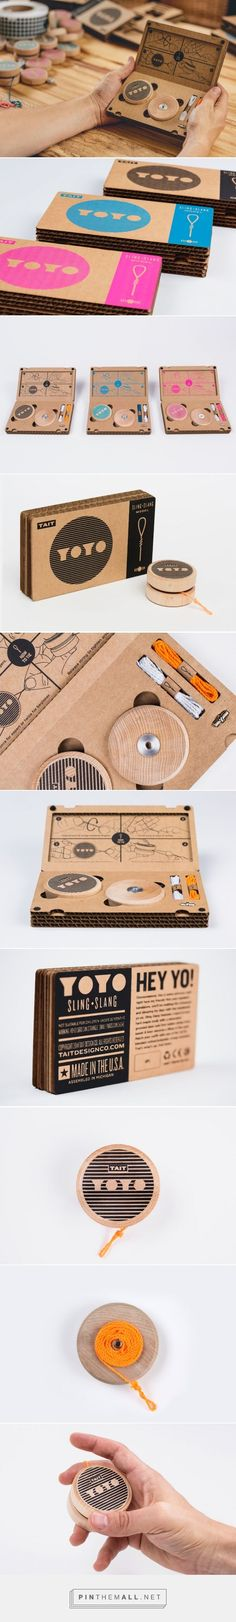 This reminds me of my childhood . Sling-Slang YOYO Designed by TAIT Design Co. Cool Packaging, Brand Packaging, Graphic Design Branding, Label Design, Carton Design, Cardboard Packaging, Communication Design, Bottle Design, Packaging Design Inspiration